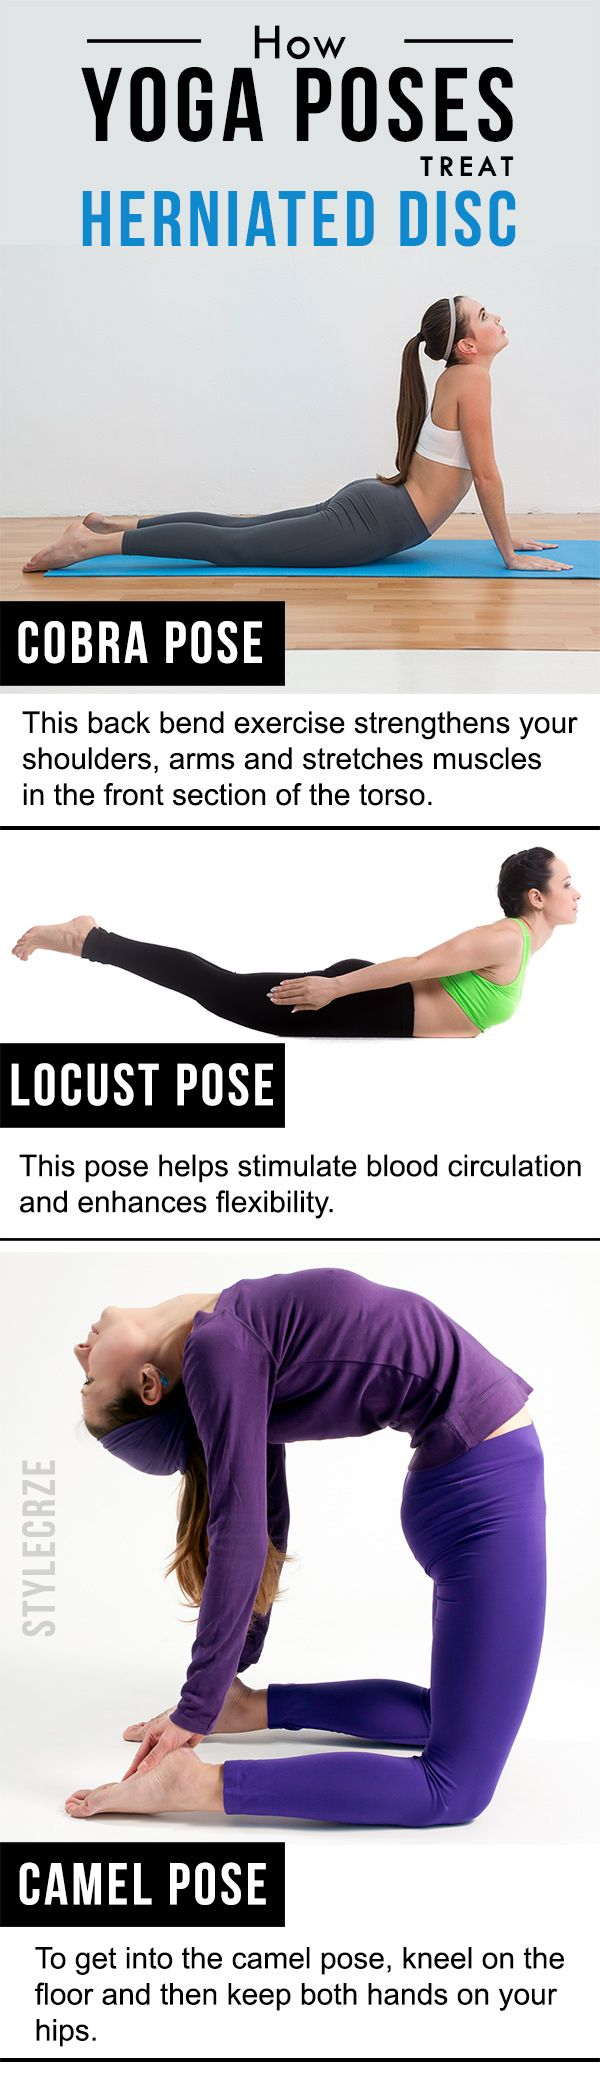 3 Effective Yoga Poses To Treat Herniated Disc | Health ...